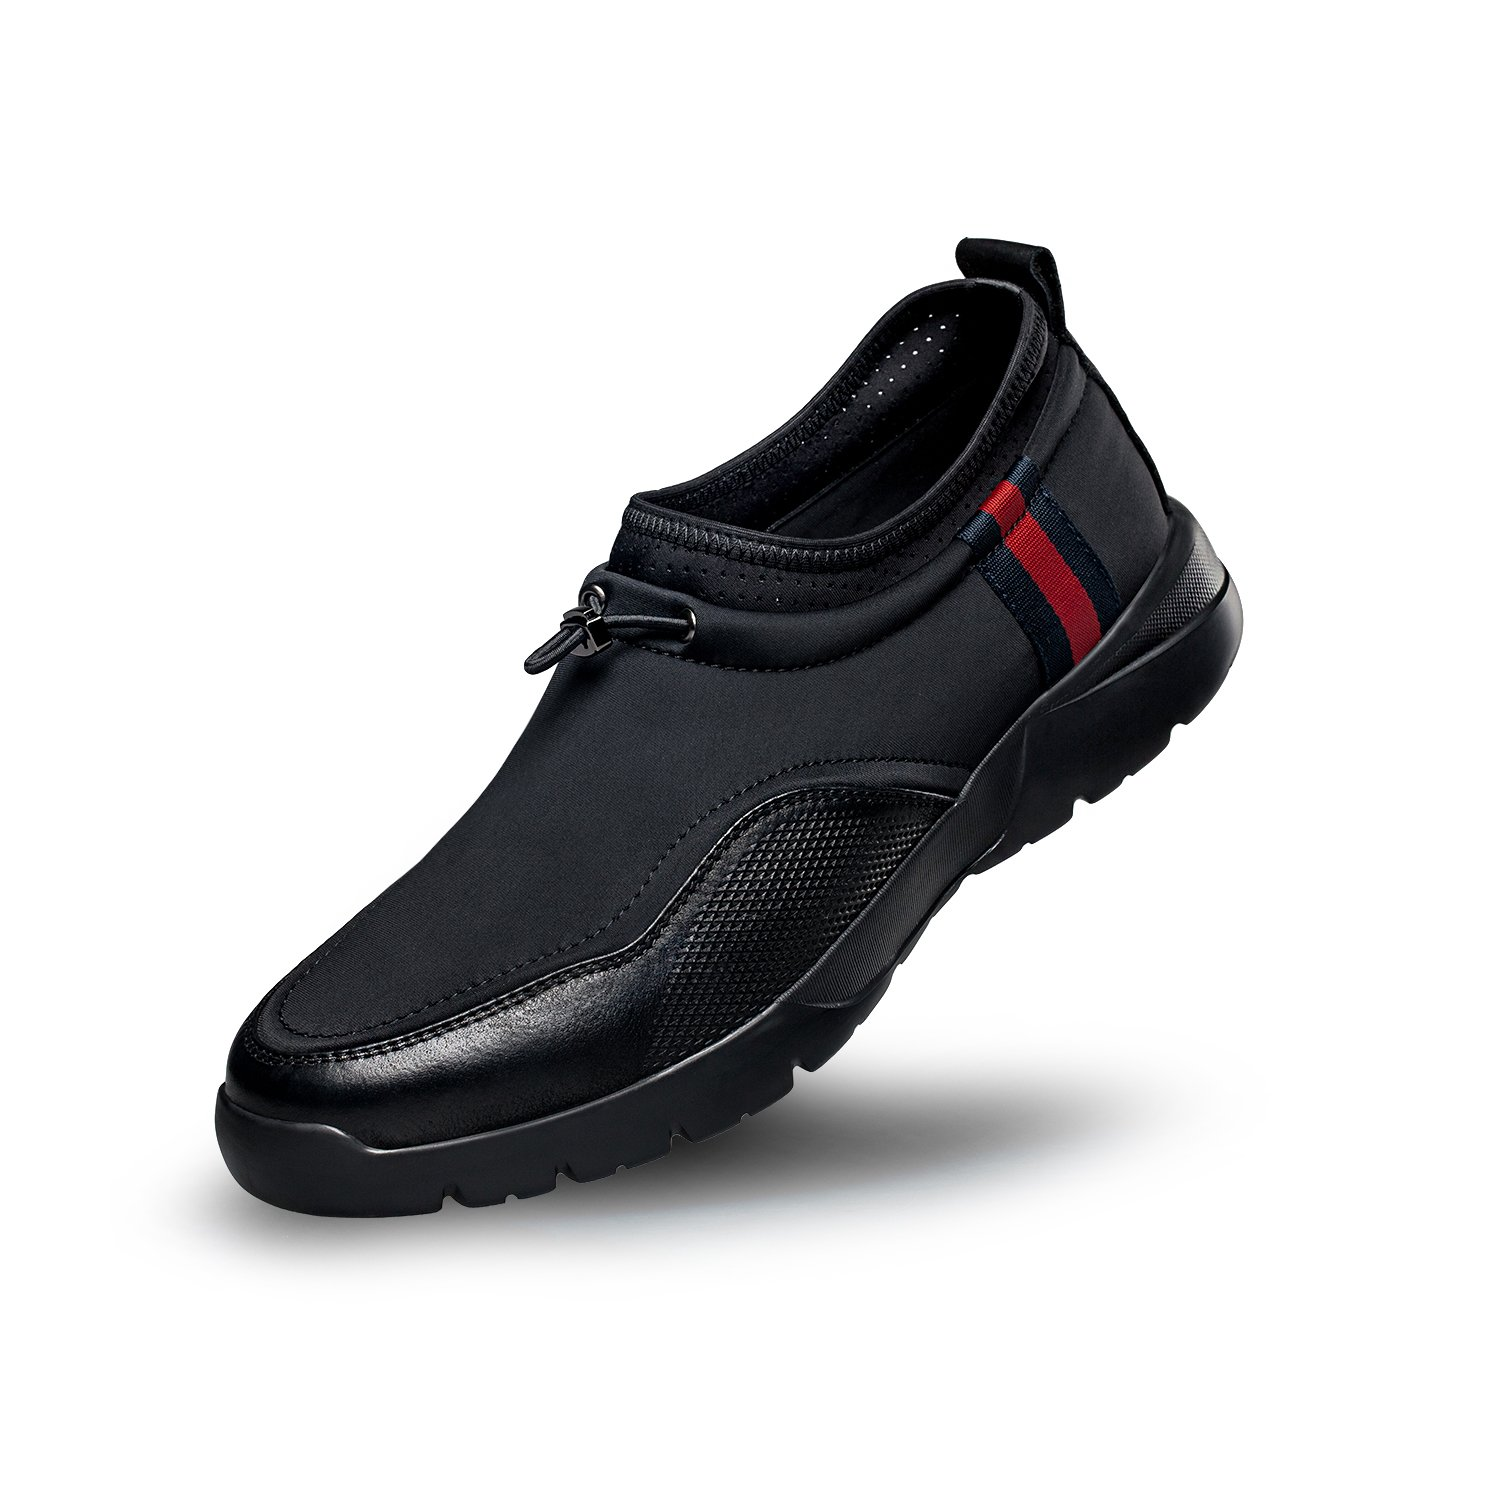 ZRO Men's Slip On Casual Fashion Sneakers Breathable Athletic Shoes Black US 10